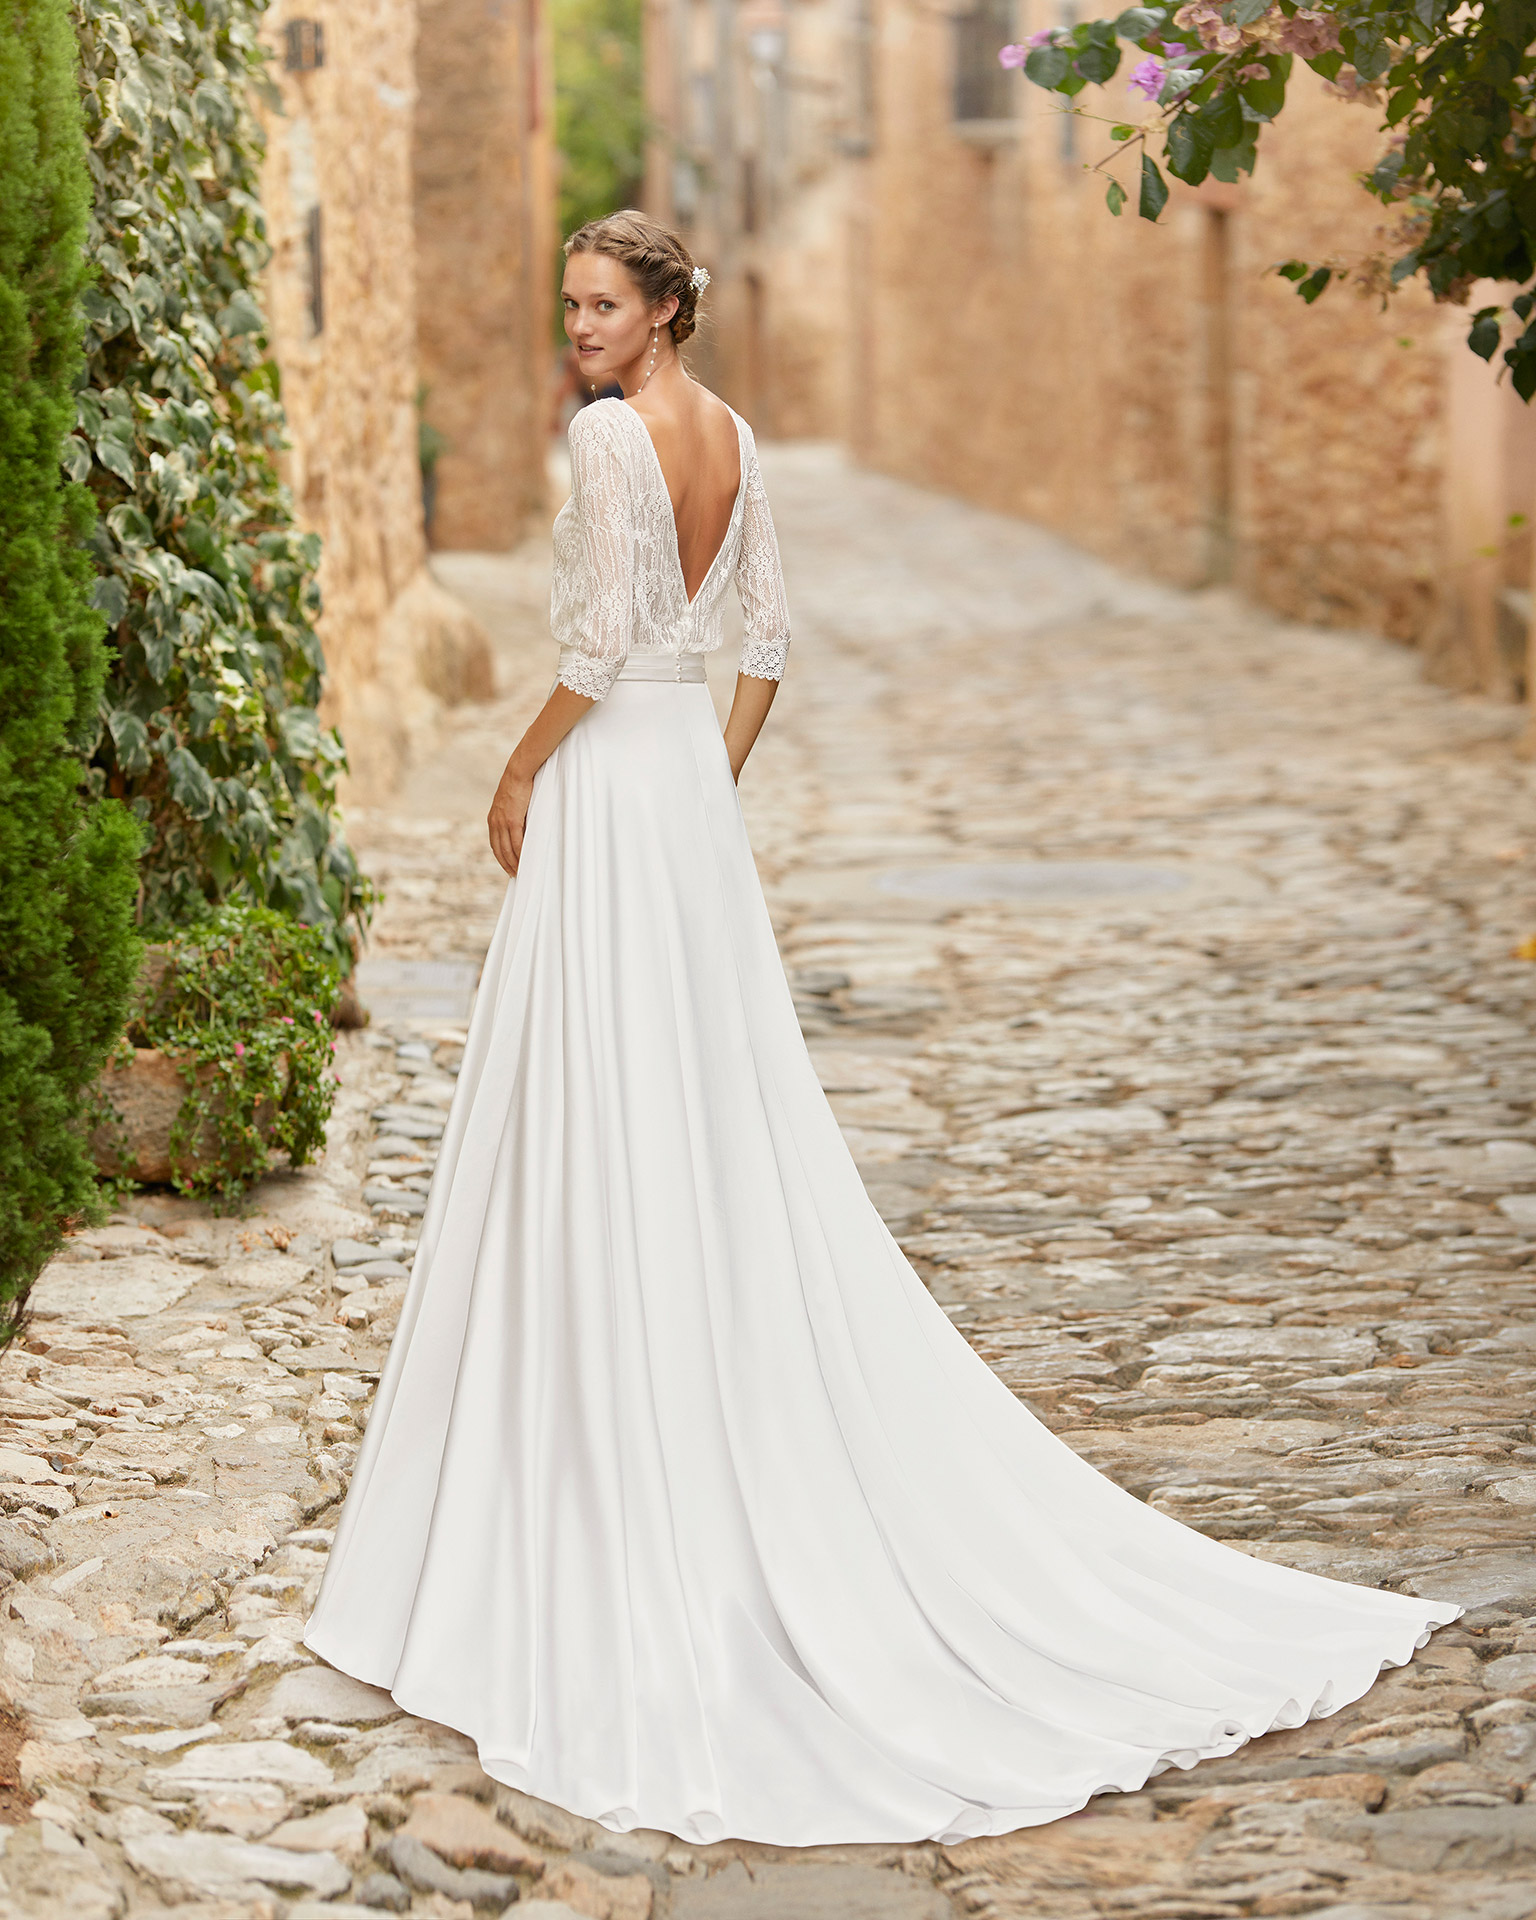 Boho-chic ballgown-style wedding dress with a lace bodice; with a bateau neckline and V-back with three-quarter sleeves; Unique Alma Novia model in crepe. 2022 ALMANOVIA Collection.